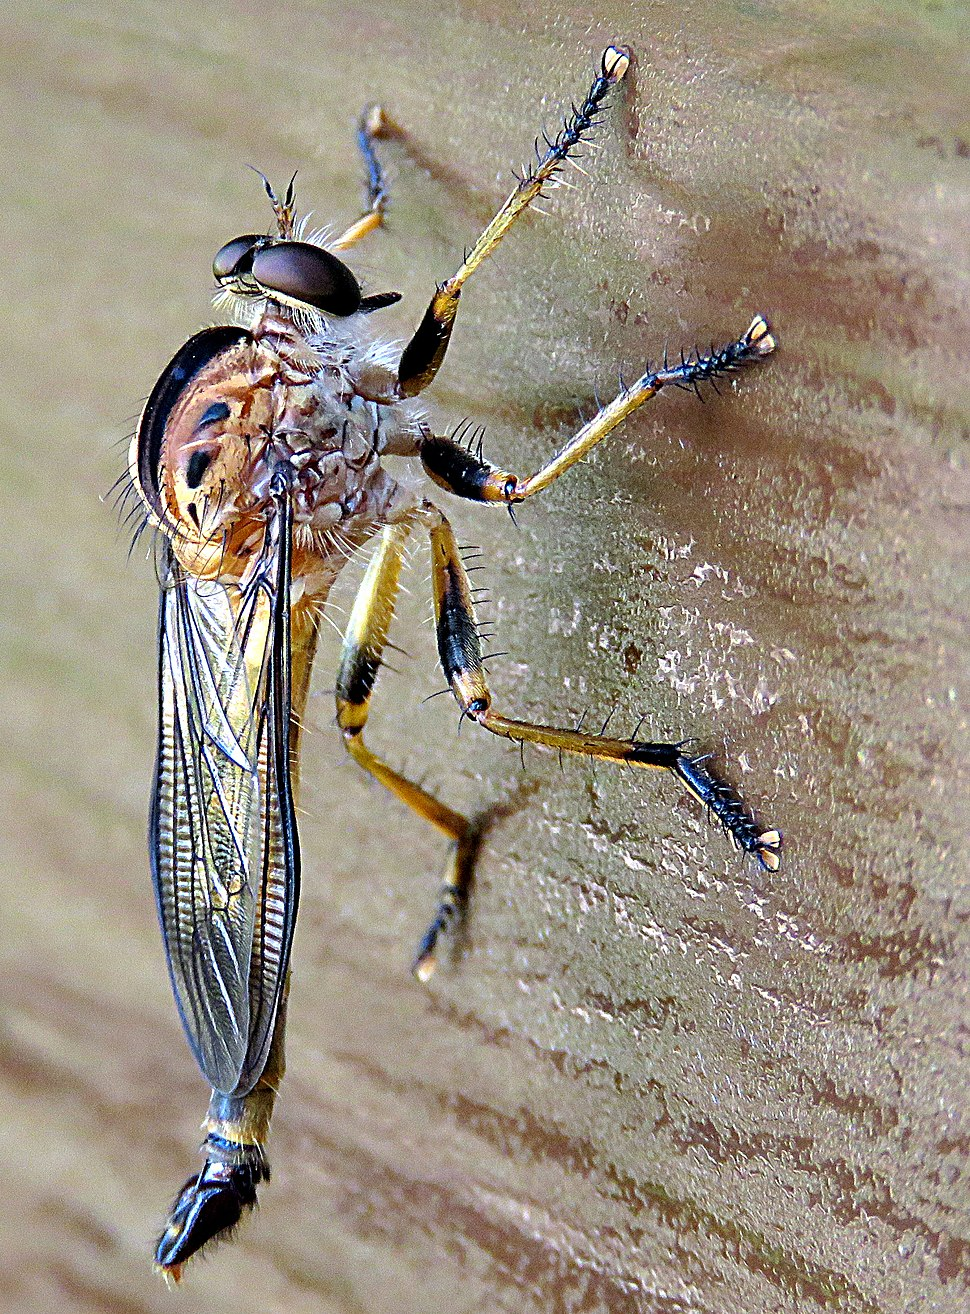 Closeup Robber Fly